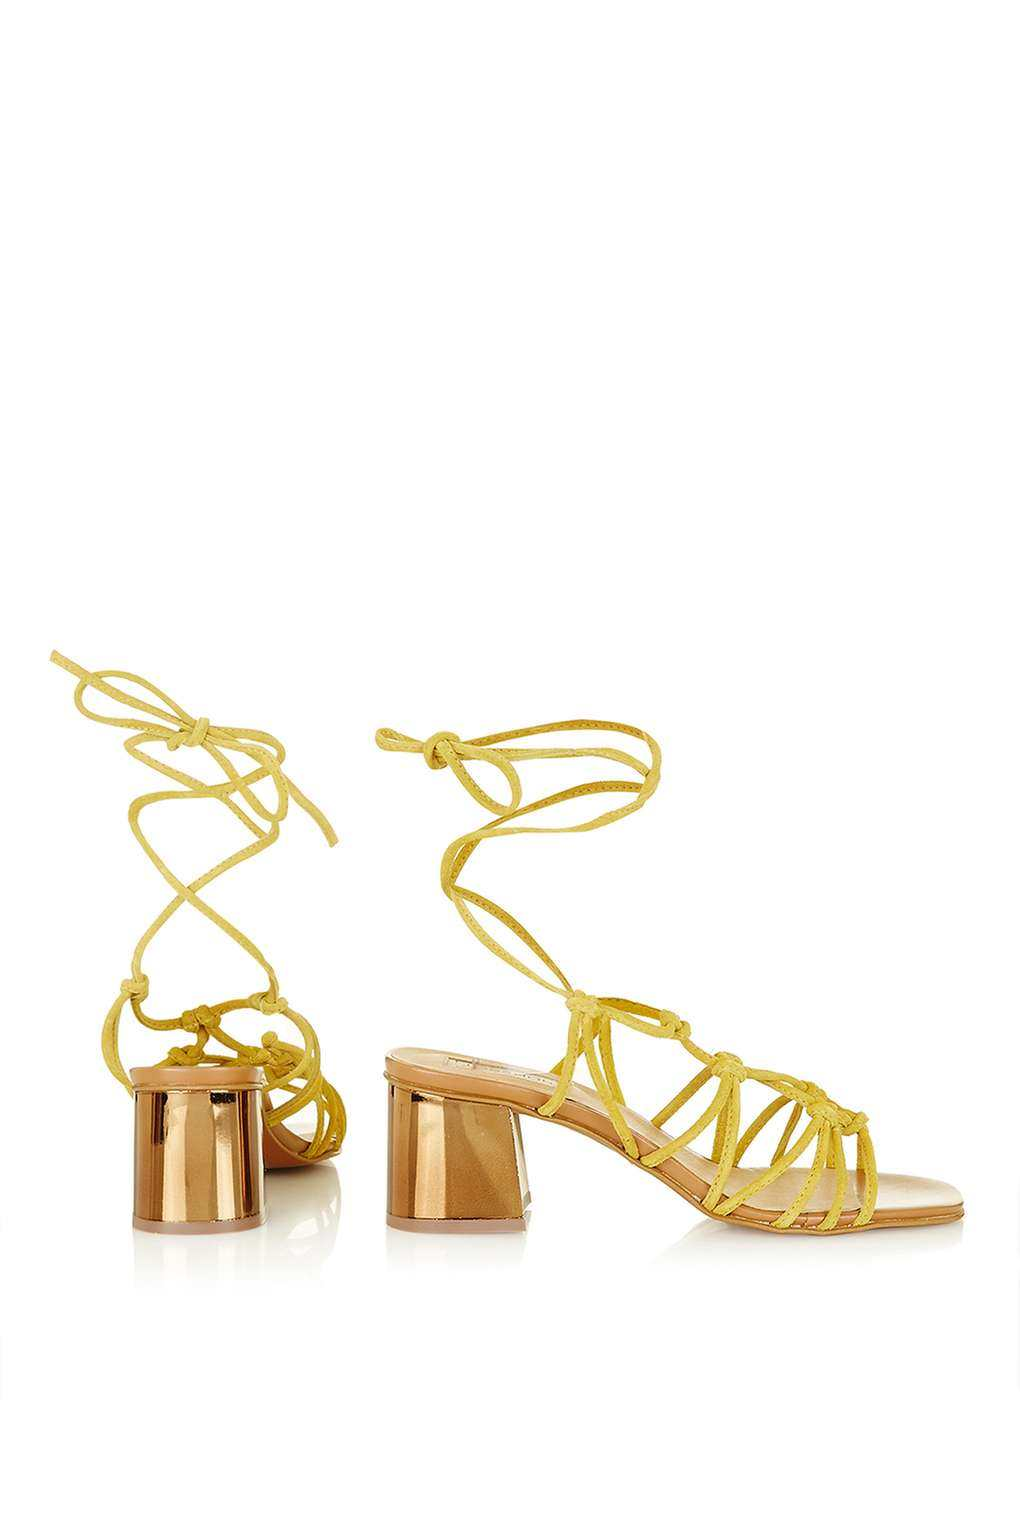 NAPOLI Knotted Heeled Sandals